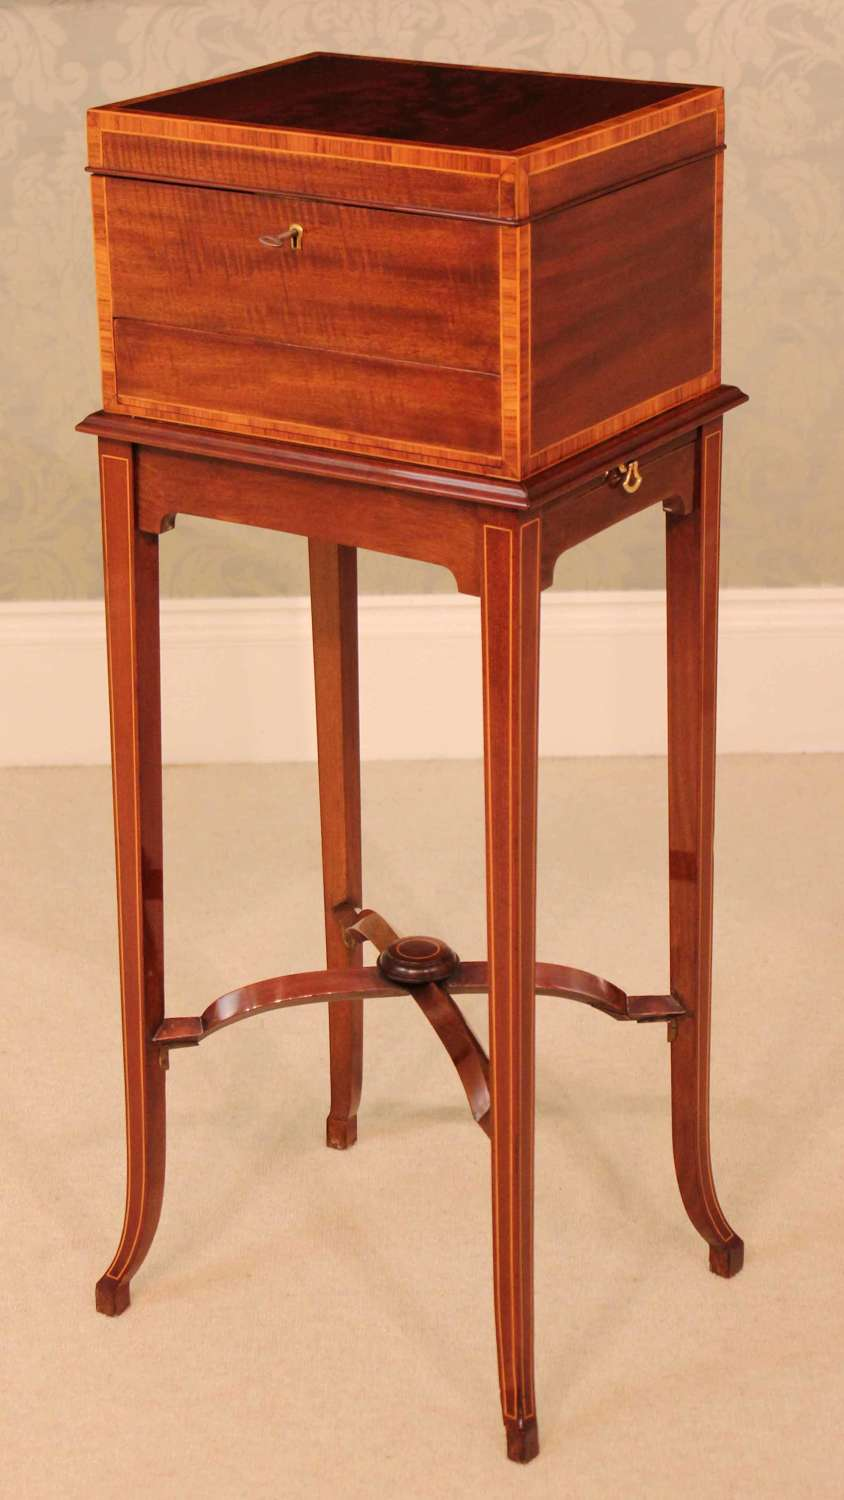 Maple and Co. Kingswood Cross-banded Edwardian Mahogany Vanity Box